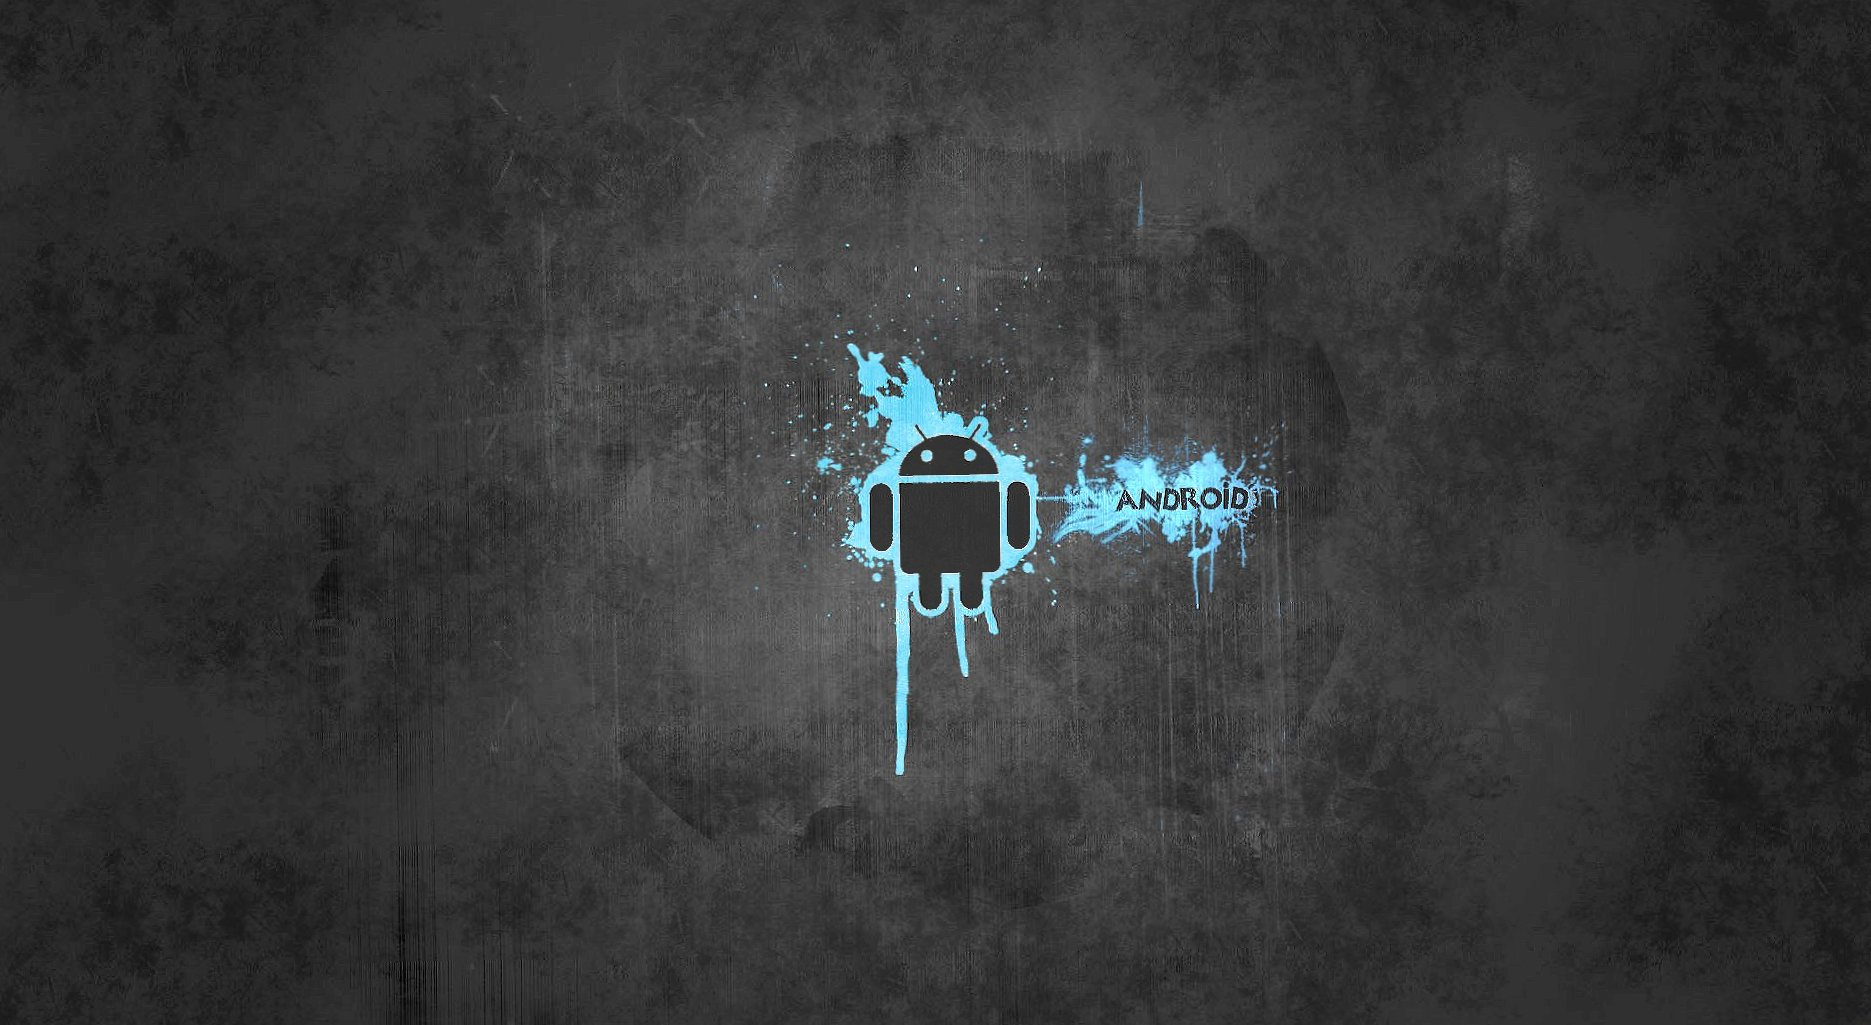 Gray and blue android wallpapers HD quality